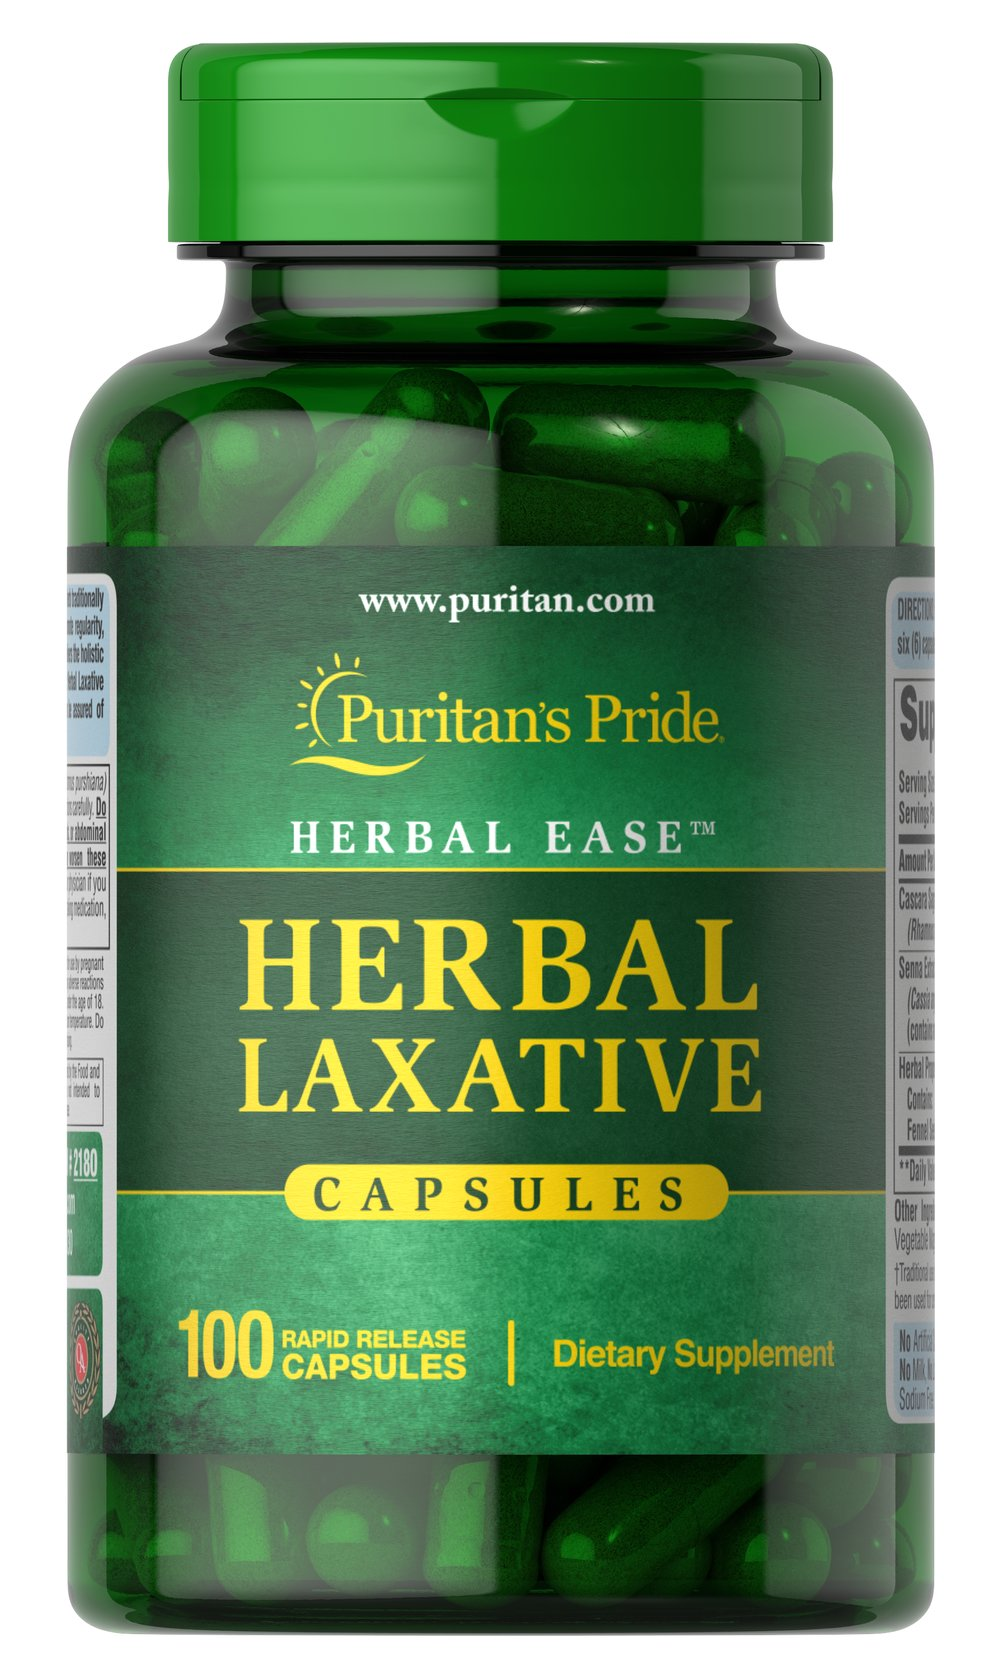 Herbal Laxative <p><strong>Herbal Laxative </strong>Capsule formula features Cascara  Sagrada, an herb traditionally used to help ease occasional constipation  and promote regularity, naturally.** Herbal Laxative Tablets contain no harsh synthetics, so you can be assured of gentle, yet efficient, cleansing.**</p><p></p><p>Also available in Tablets. See items #30329, 30330 and 30331.</p> 100 Capsules  $11.99